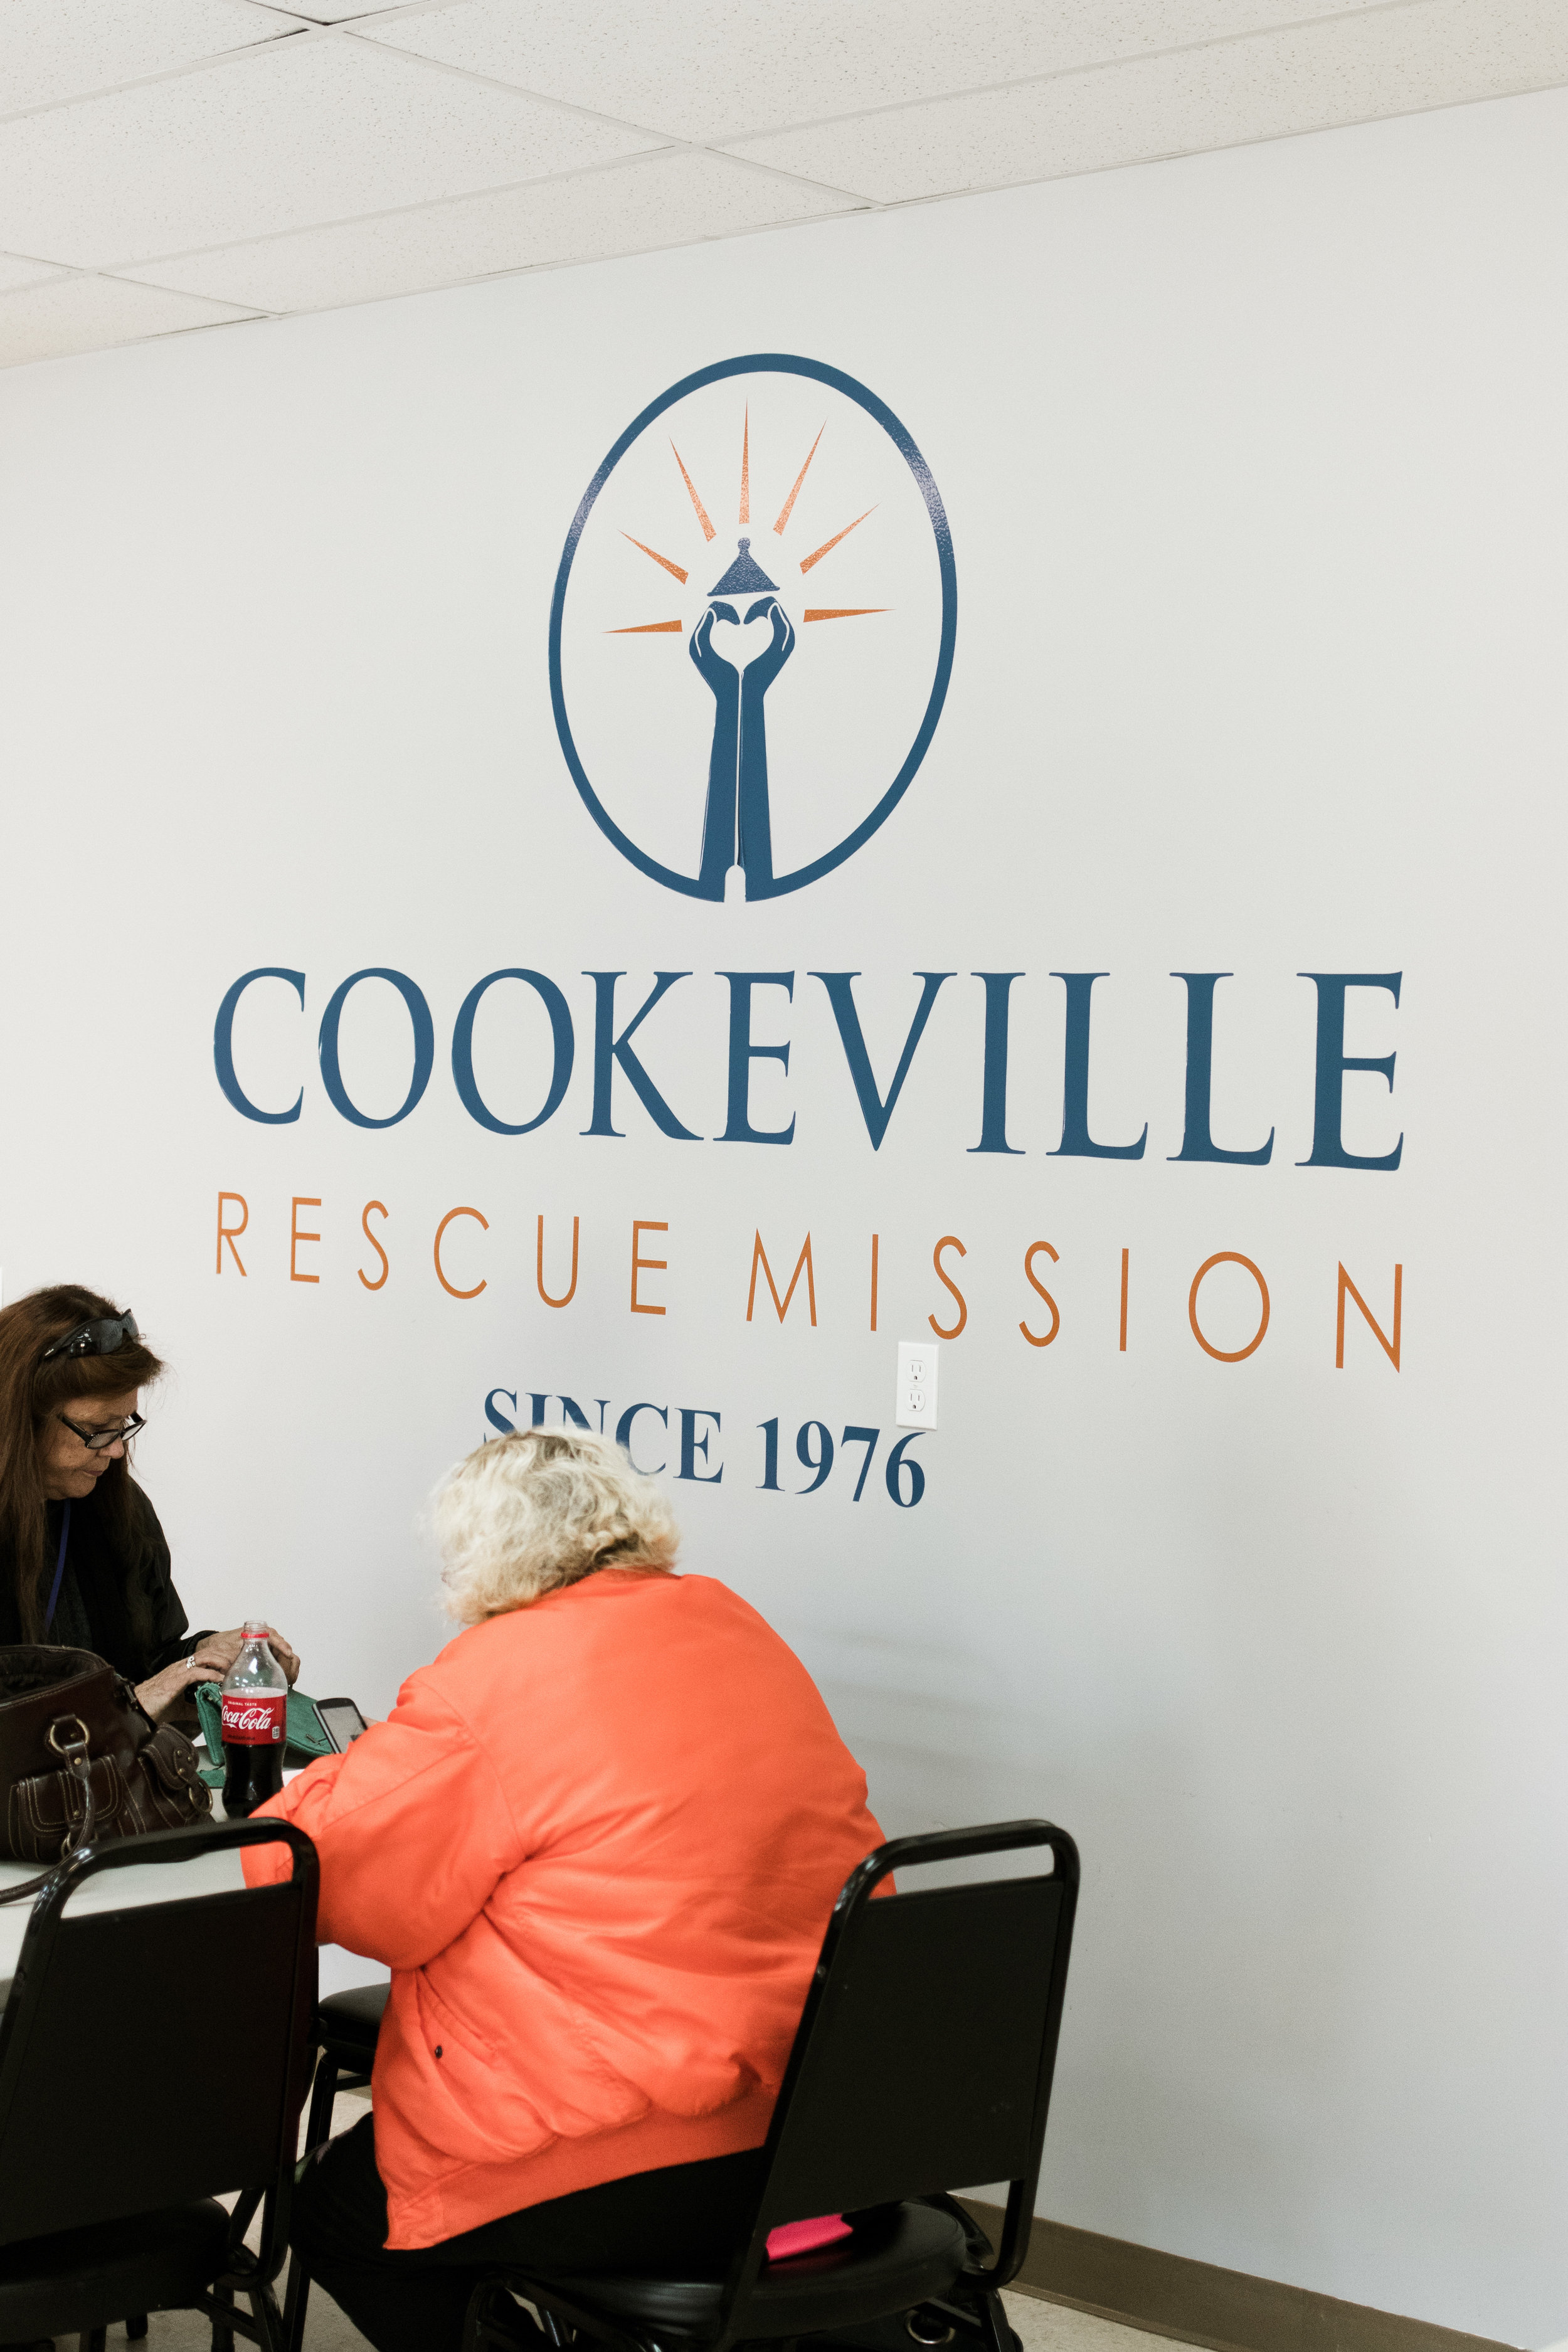 The Cookeville Rescue Mission and SeedFork of The Highlands